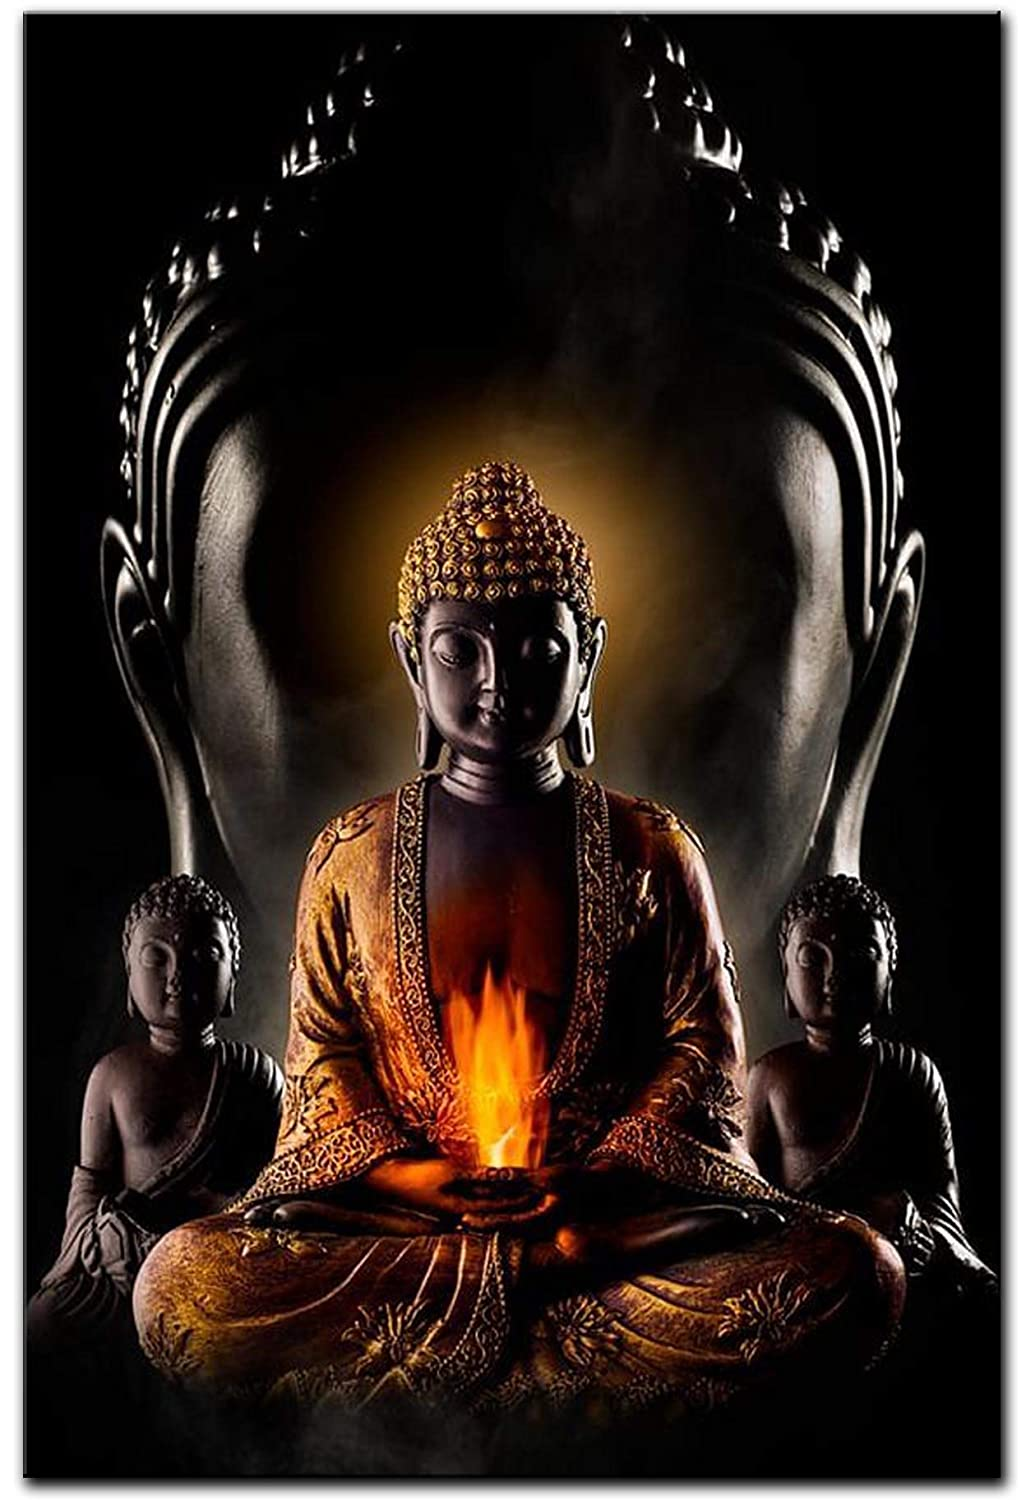 Buy Wallpics Buddha Wallpapers Glossy Photo Paper Poster For Living Room Bedroom Office Kids Room Hall 13x19 Online At Low Prices In India Amazon In